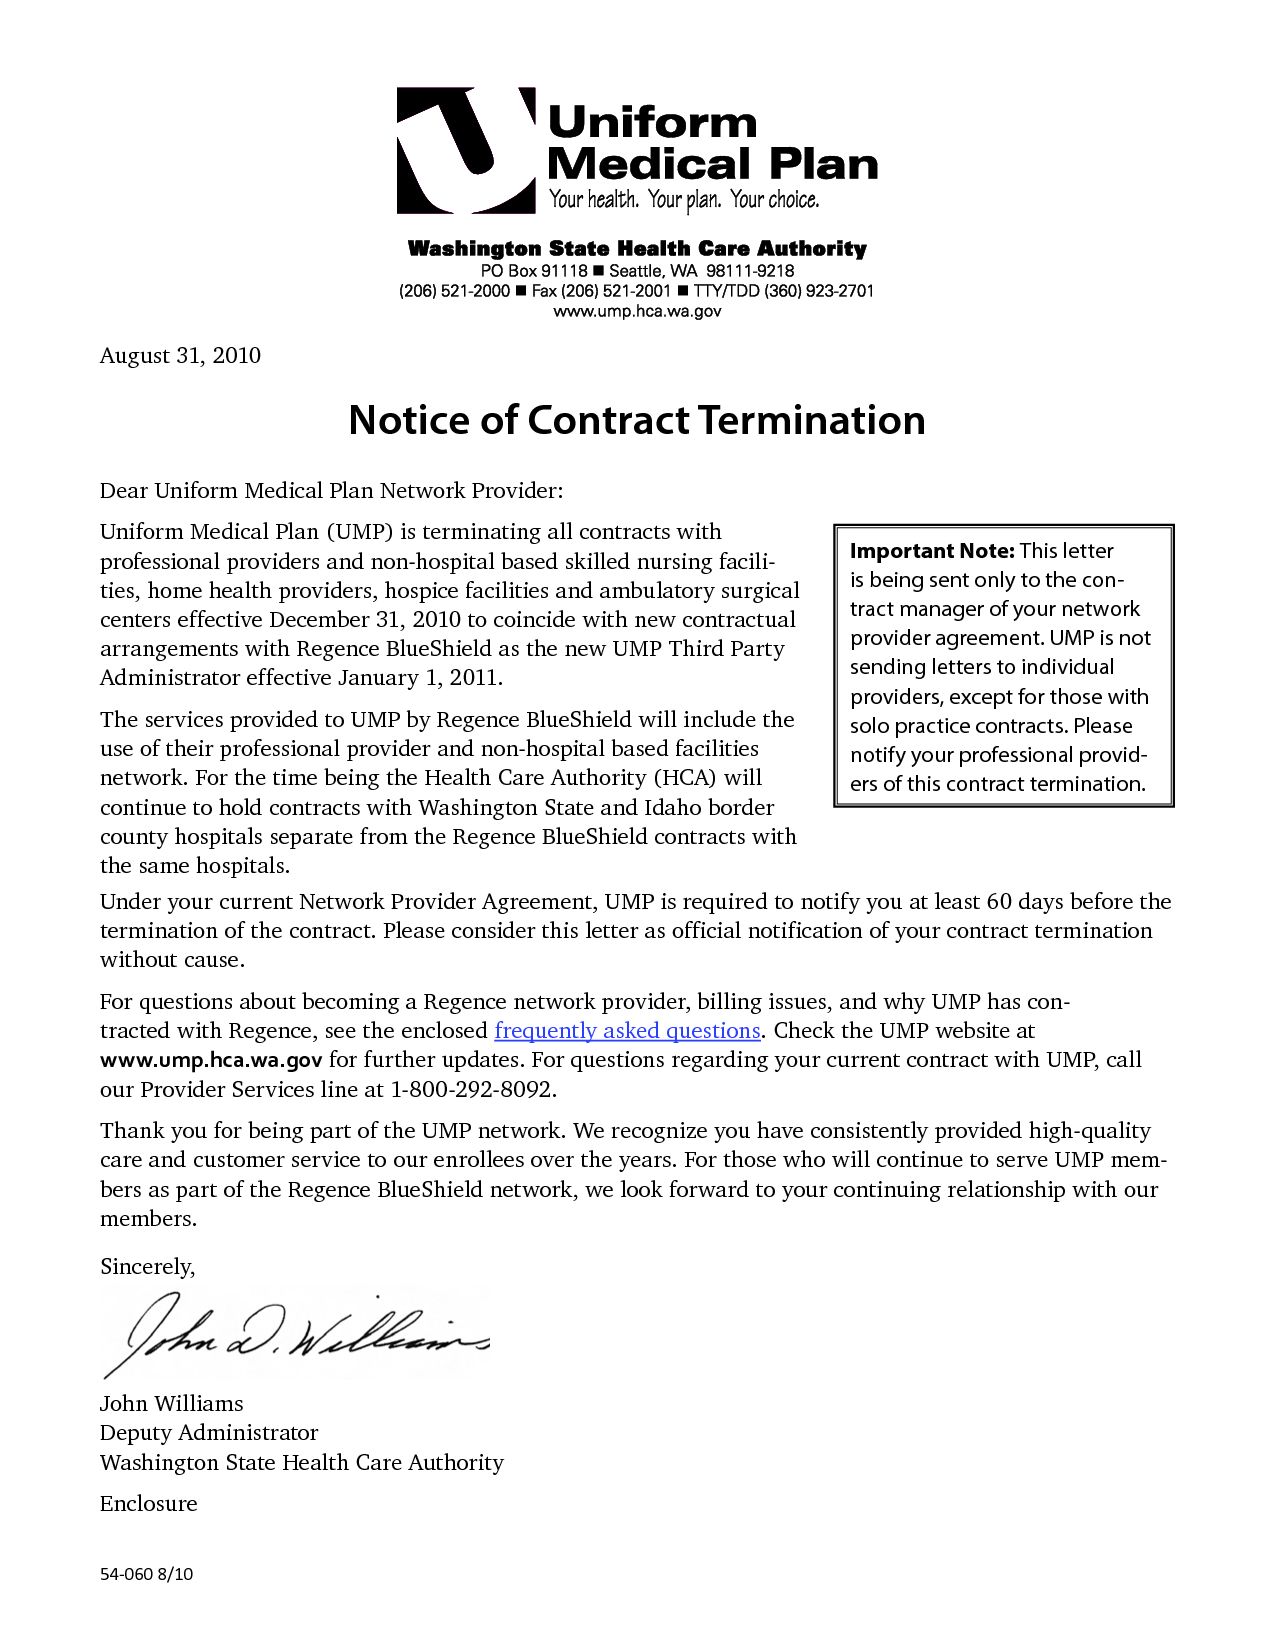 Business Contract Termination Letter Template Collection Letter